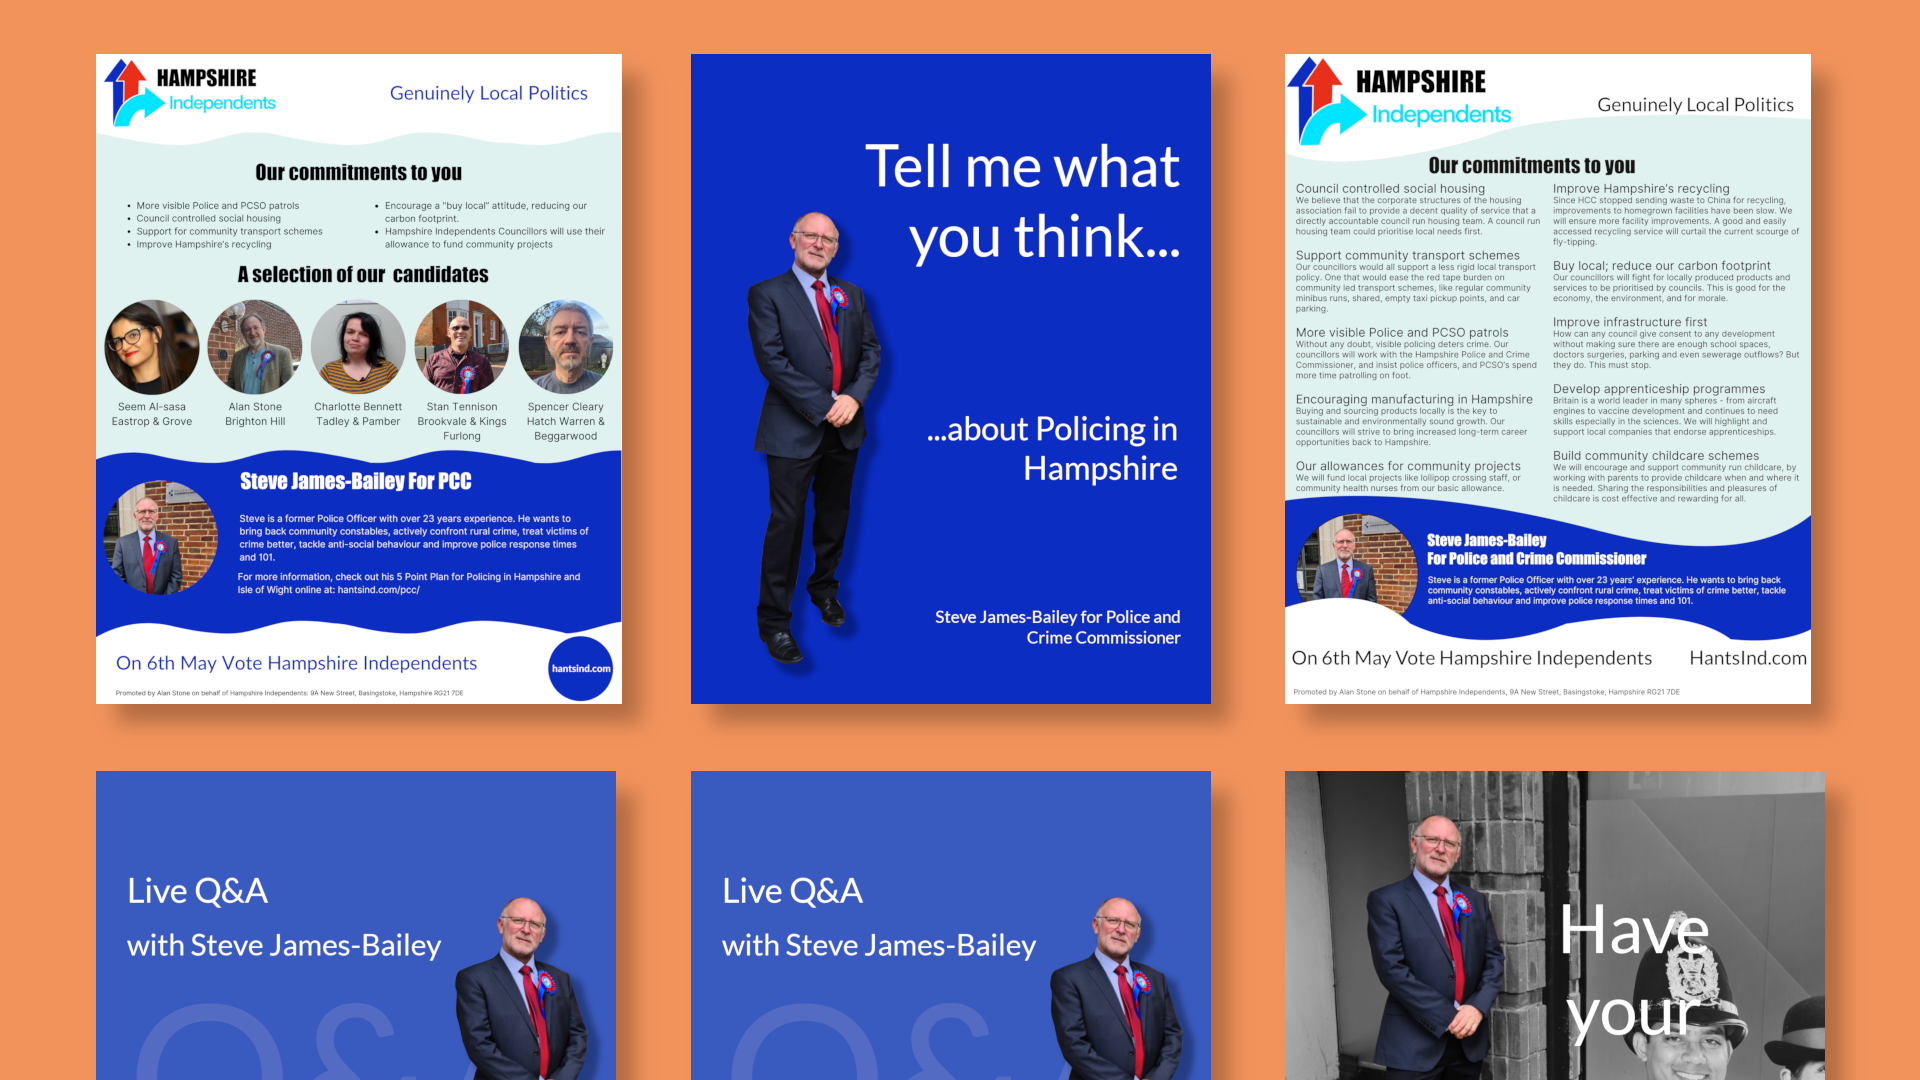 Creative Portfolio: Hampshire Independents - Policing in Hampshire Campaign with Steve James-Bailey